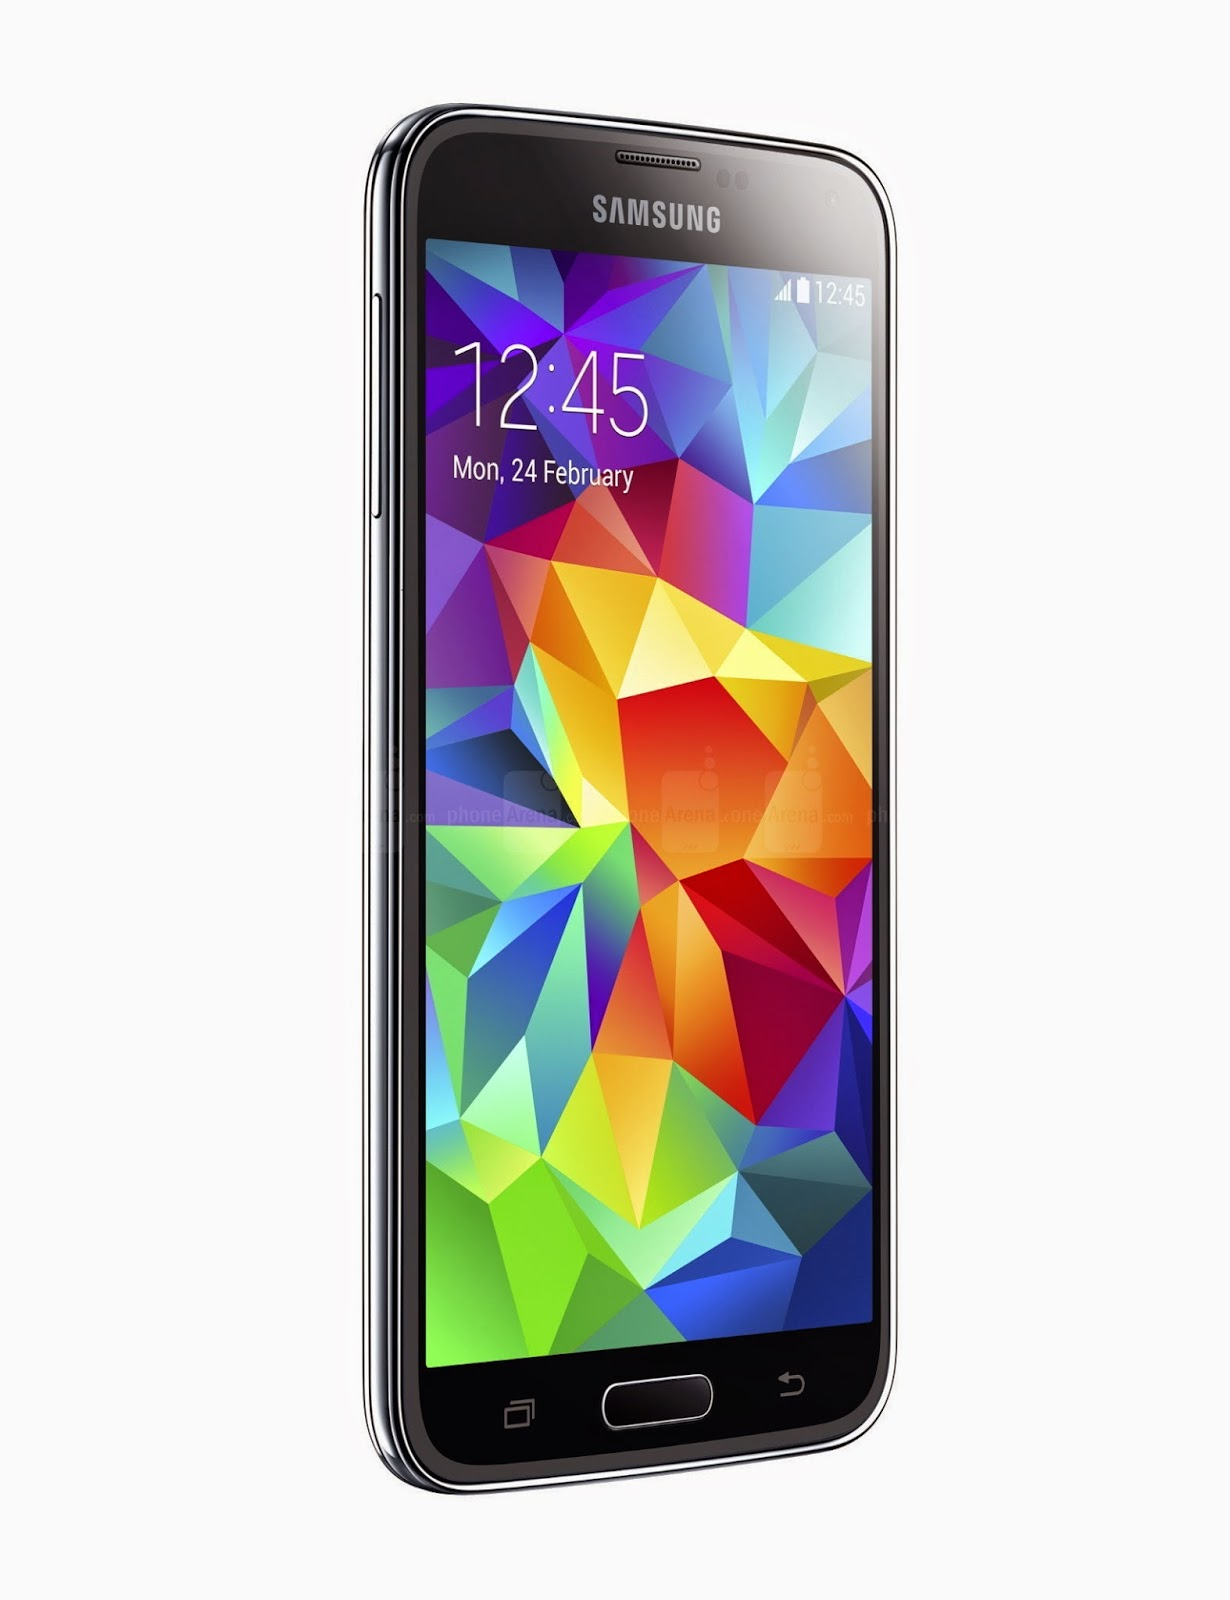 Samsung Galaxy Left View S5